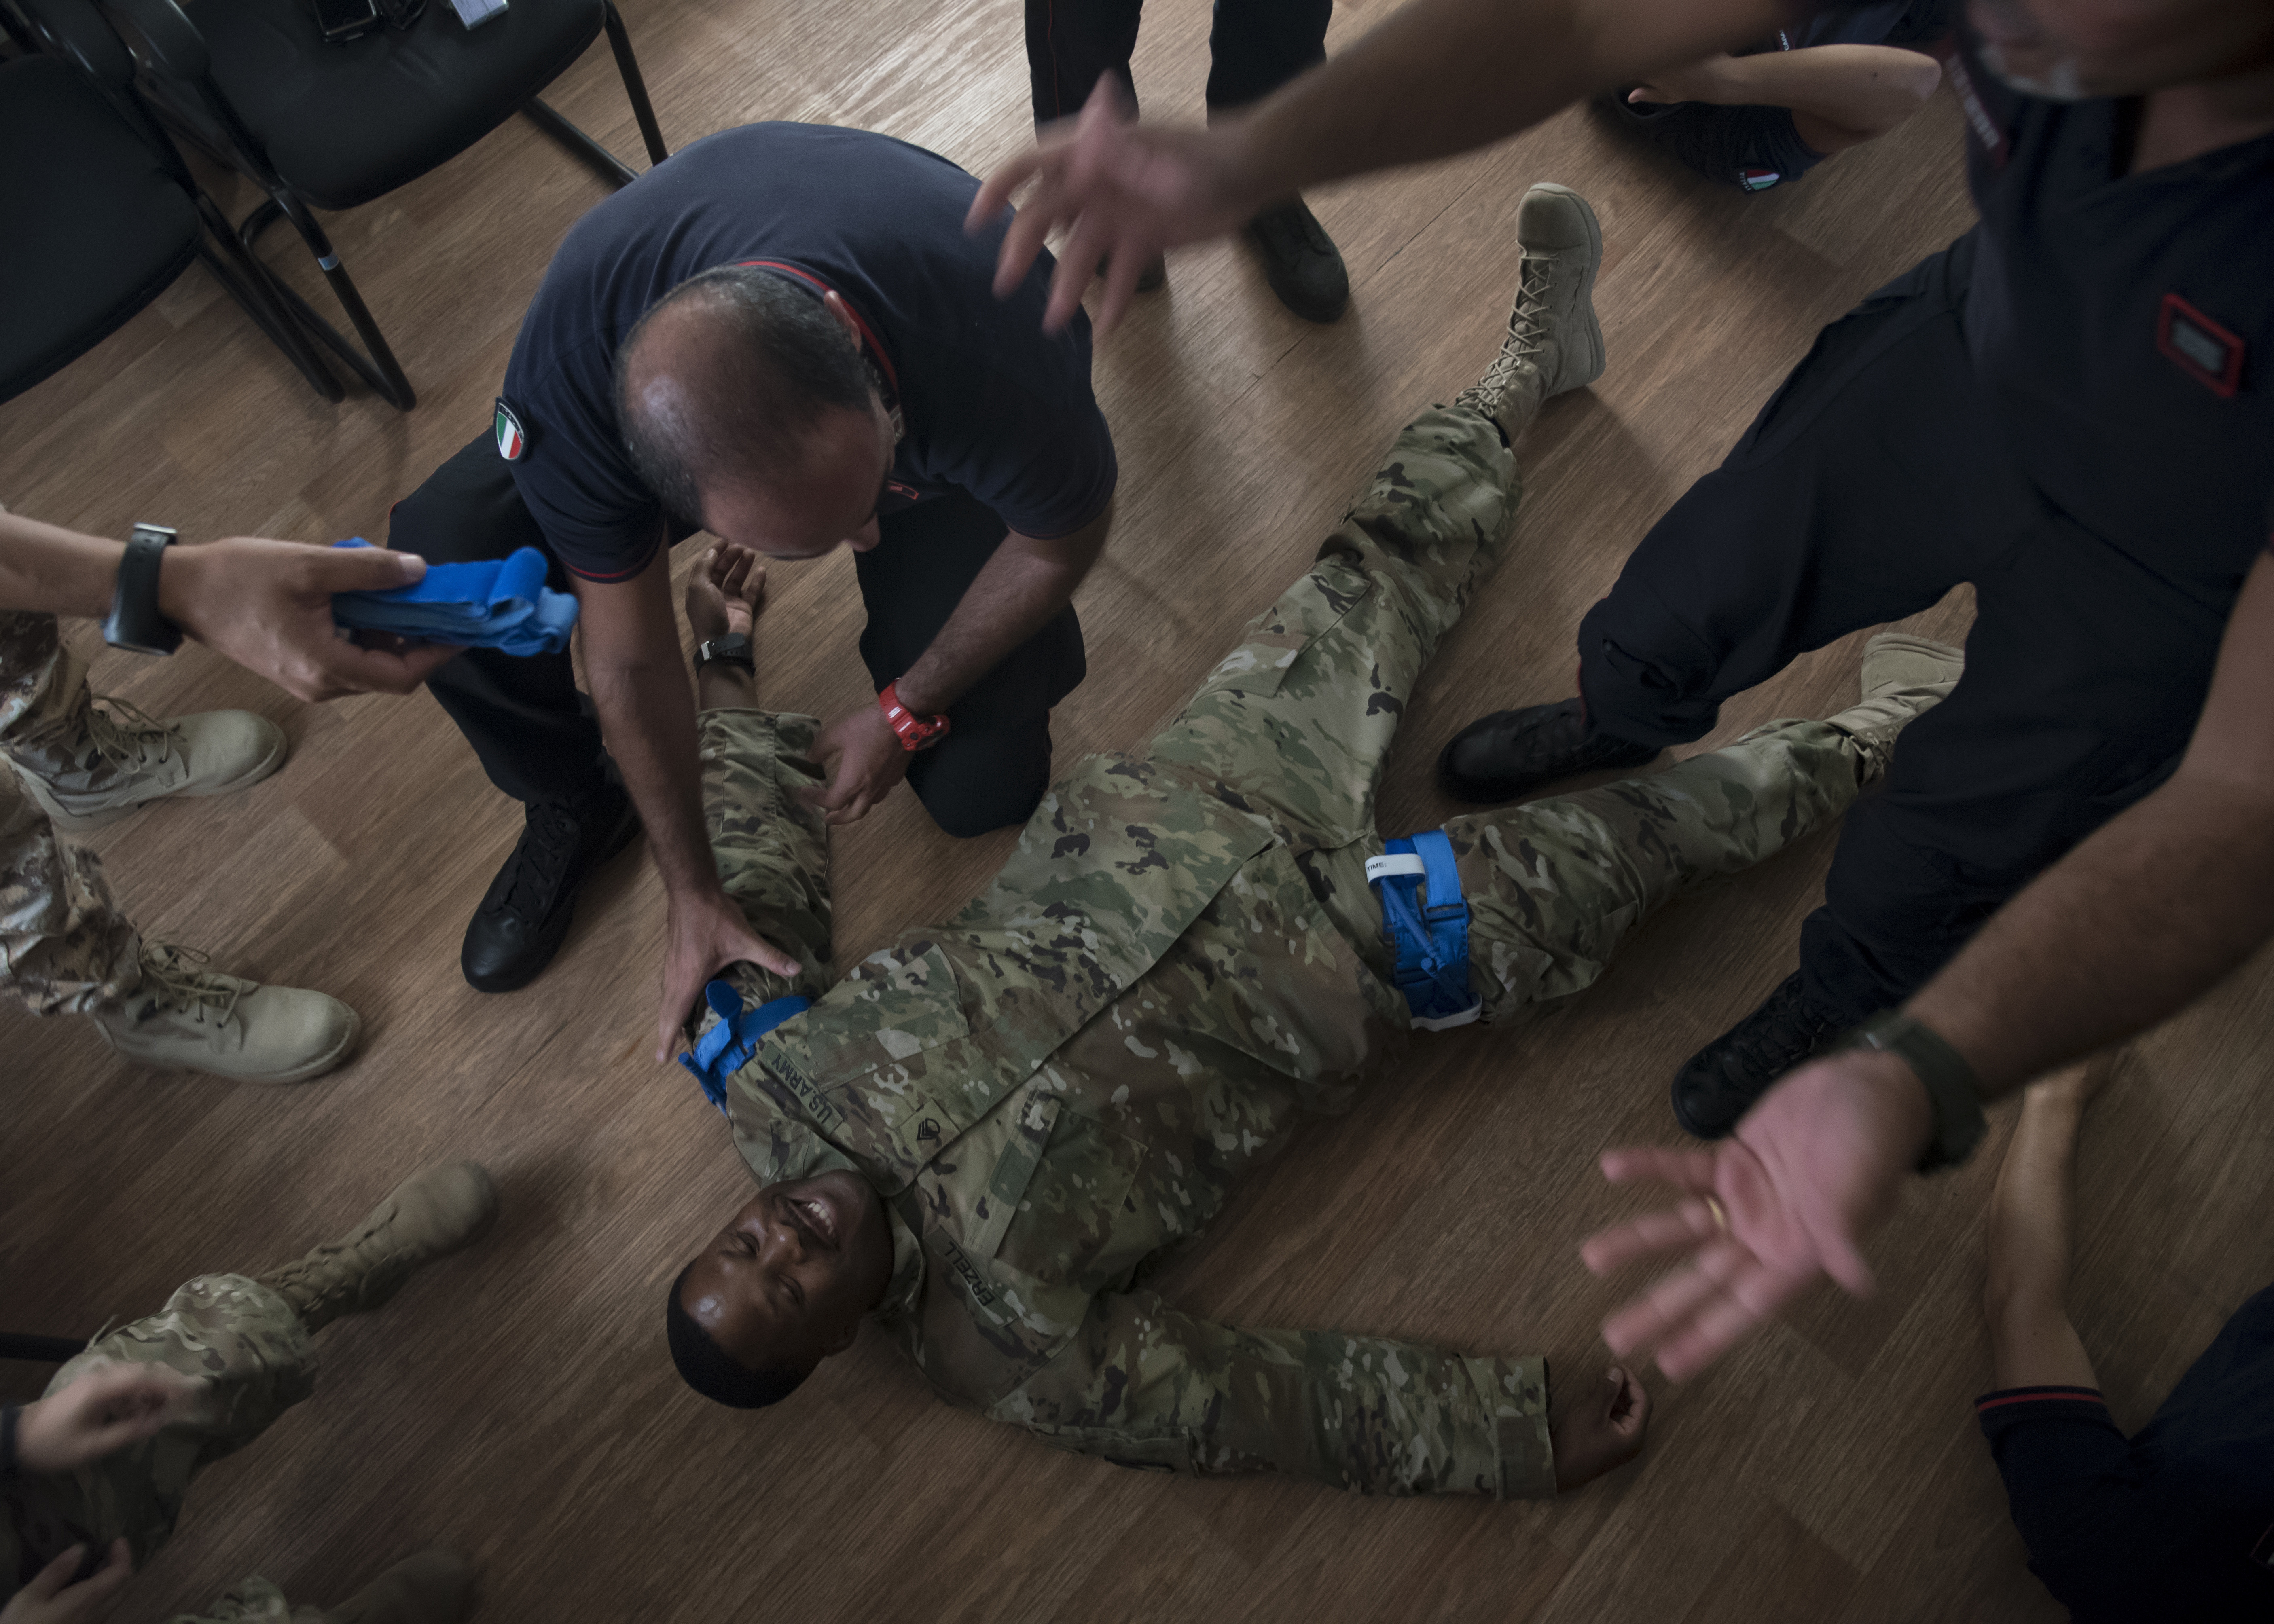 U.S. Army Staff Sgt. Duan Erzell, a communication's specialist with the 403rd Civil Affairs (CA) Battalion, participates in a tourniquet application demonstration as a simulated casualty during a Combat Lifesaver Course (CLS) at Base Militar Italiano de Supporte, Djibouti, Jan. 15, 2019. Proper tourniquet application is a primary focus of the CLS, a course medics from the 403rd CA Functional Specialty Team recently conducted for members of Base Militar Italiano de Supporte. (U.S. Air Force photo by Senior Airman Kirsten Brandes)